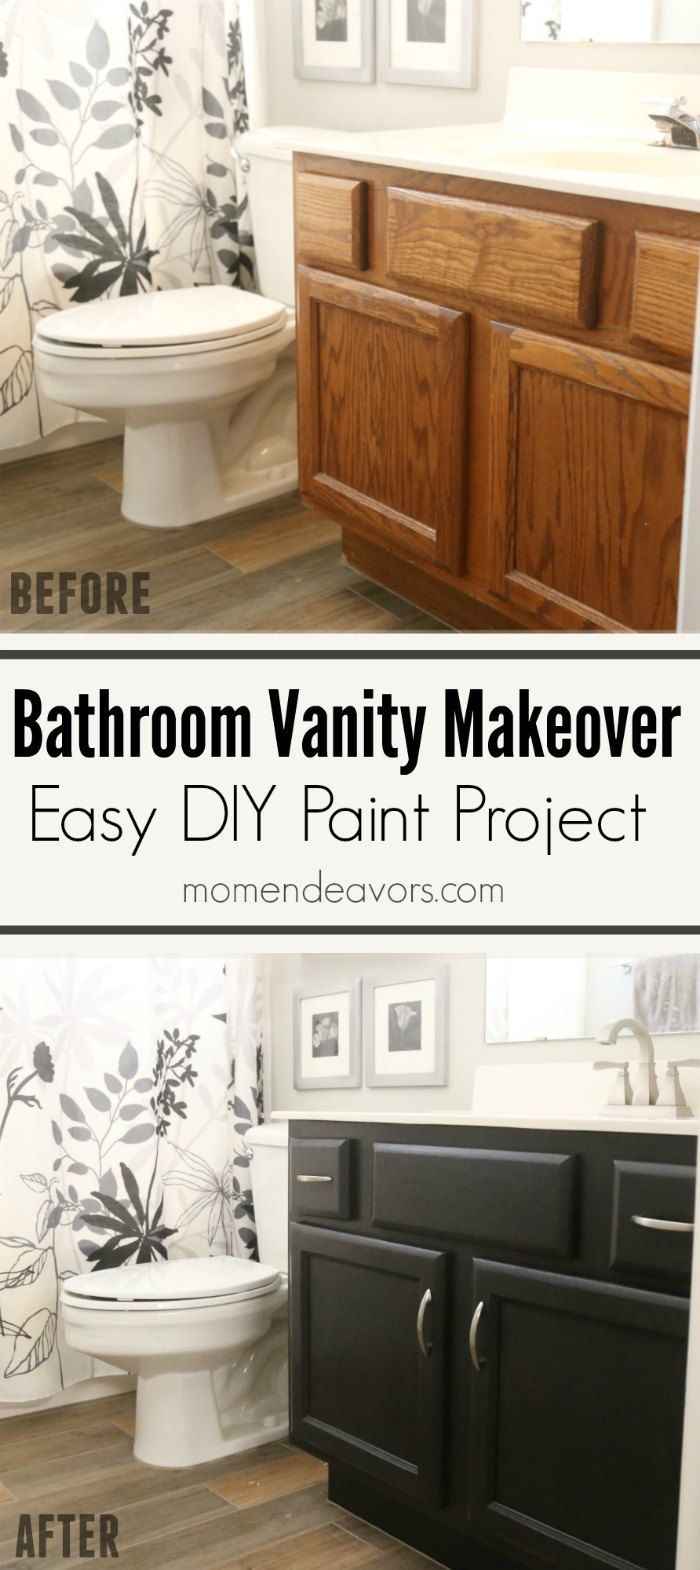 bathroom cabinet paint ideas pin by endeavors on diy home decor 11119